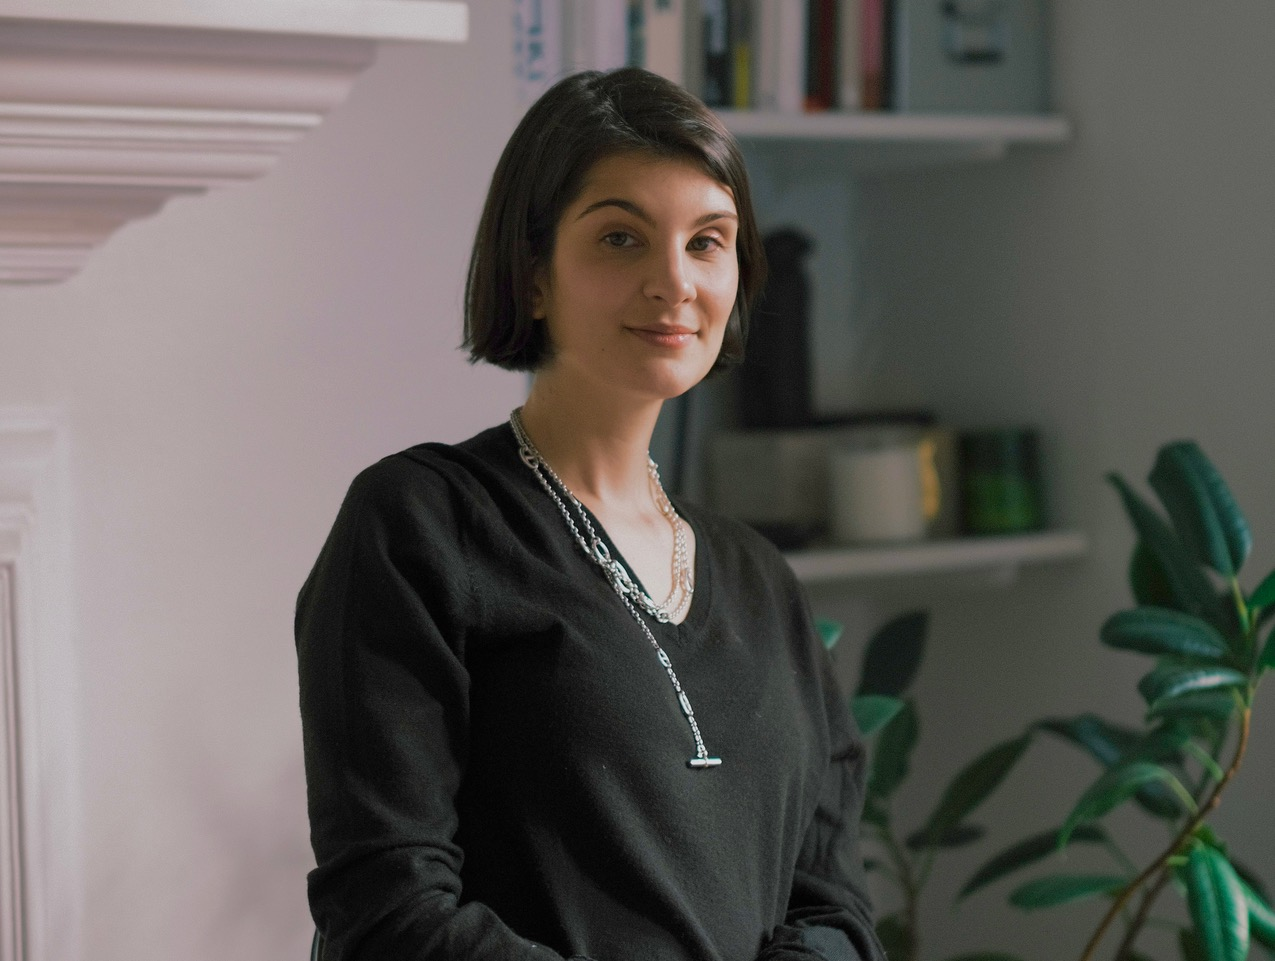 Viola Angiolini - Director of Research and Curatorial at Jeffrey Deitch